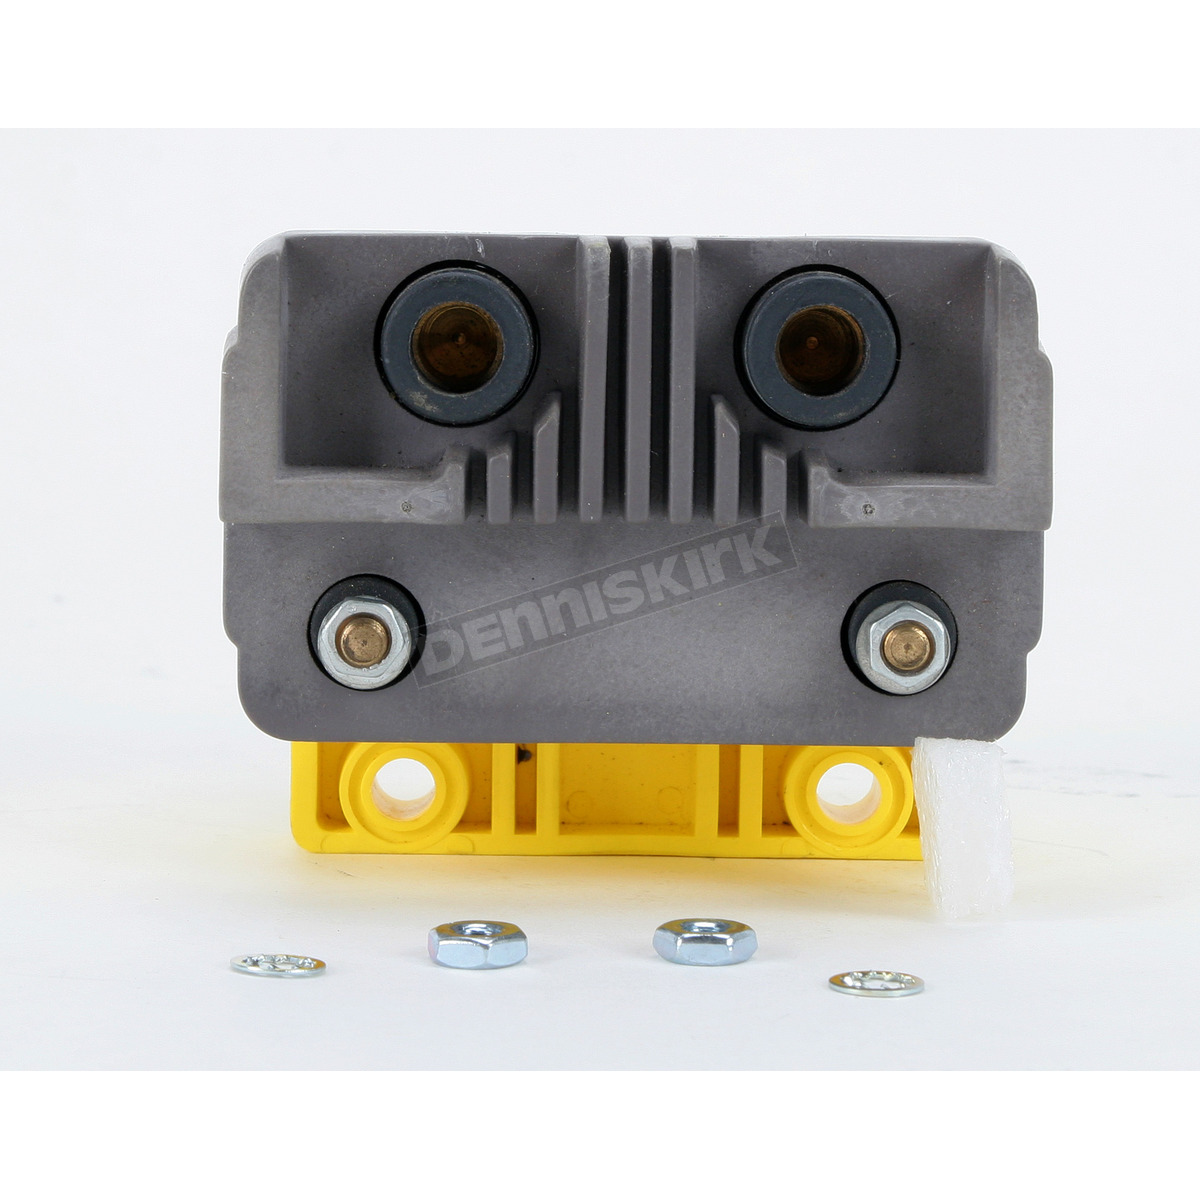 Accel Yellow Hei Super Coil Kit For H D 80 03 W Electronic Ignition 1993 Fxdwg Wiring Diagram 140407